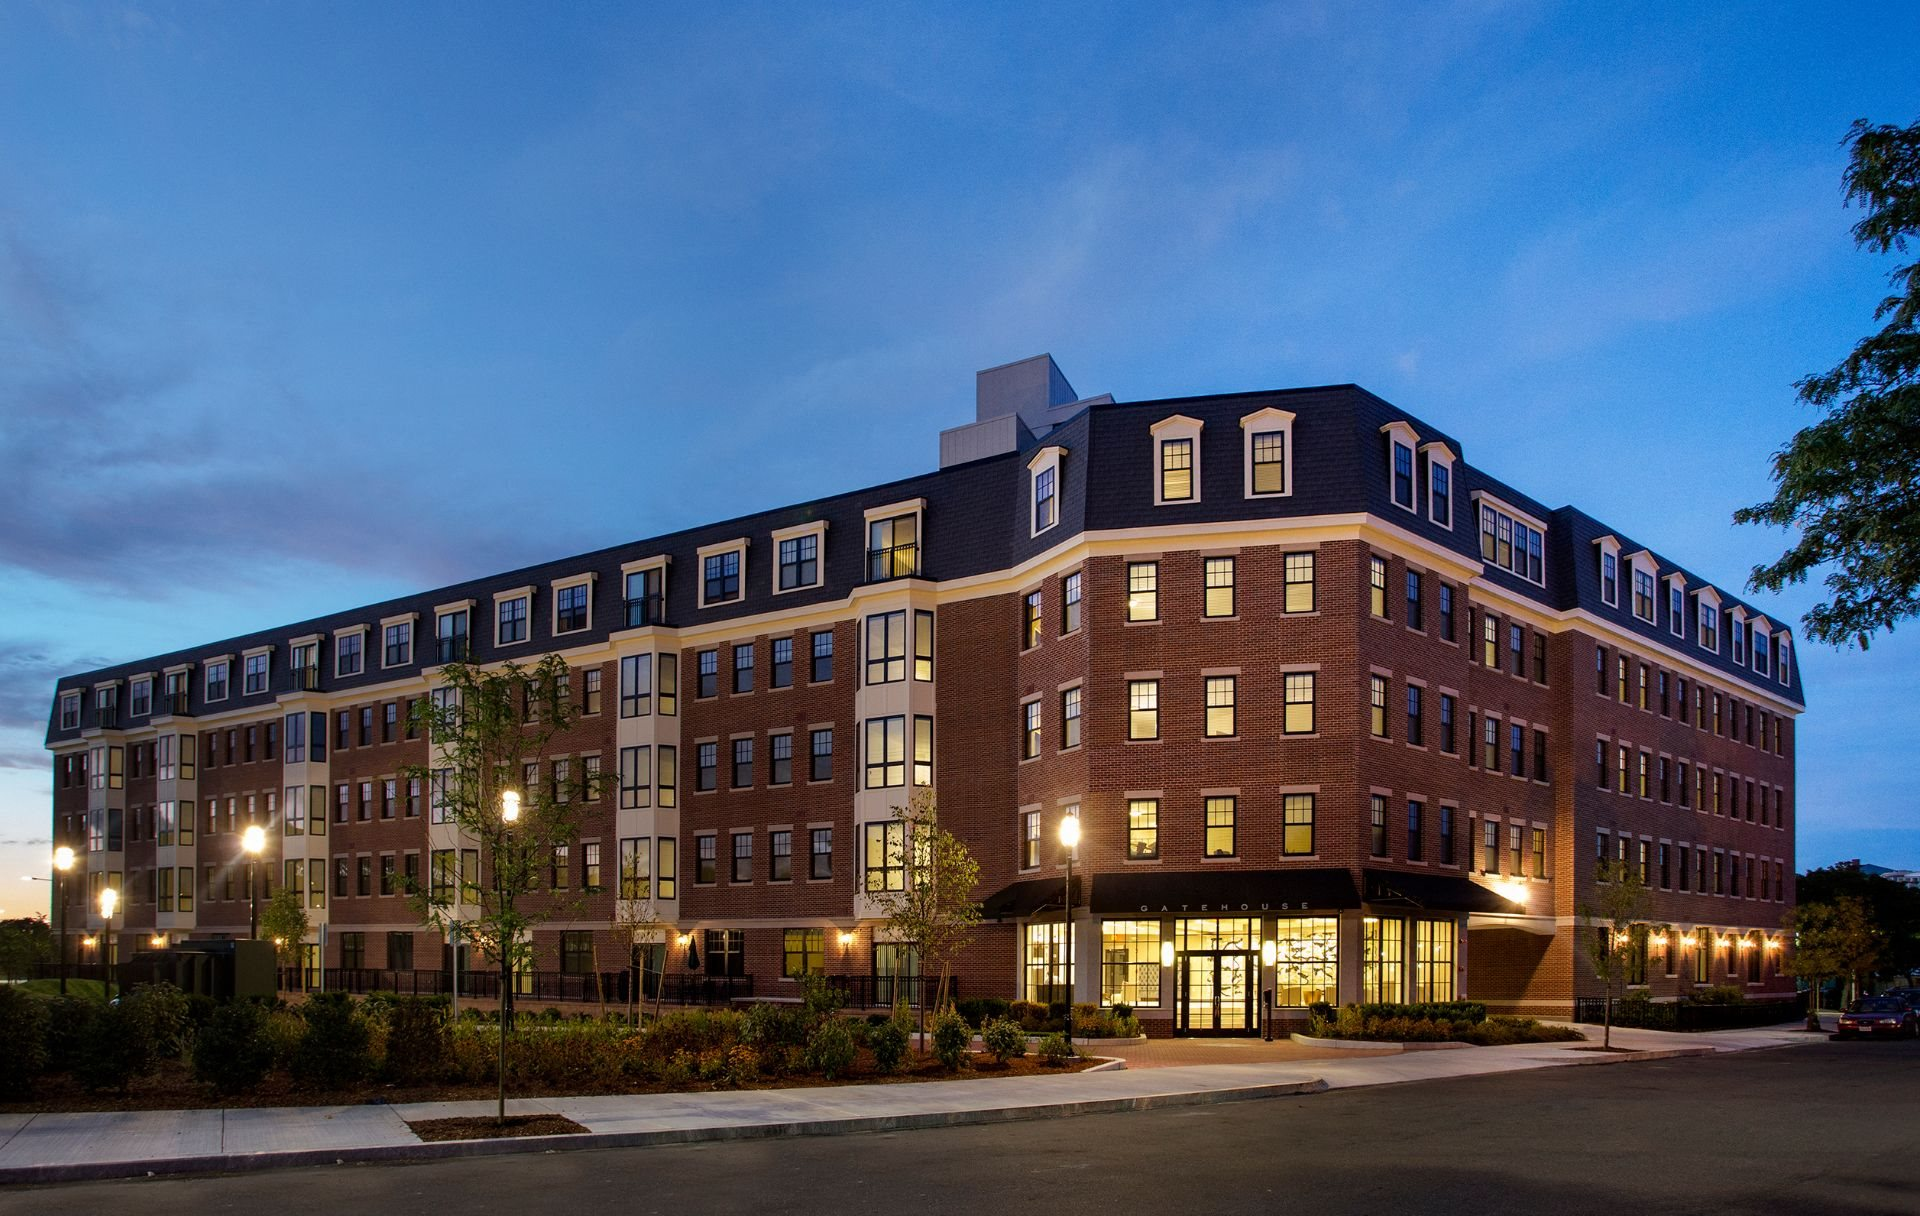 Exterior 5-Story Building at Dusk with Beautiful Controlled Access Entrance and Garage Parking Entrance at Gatehouse 75, Charlestown, Massachusetts